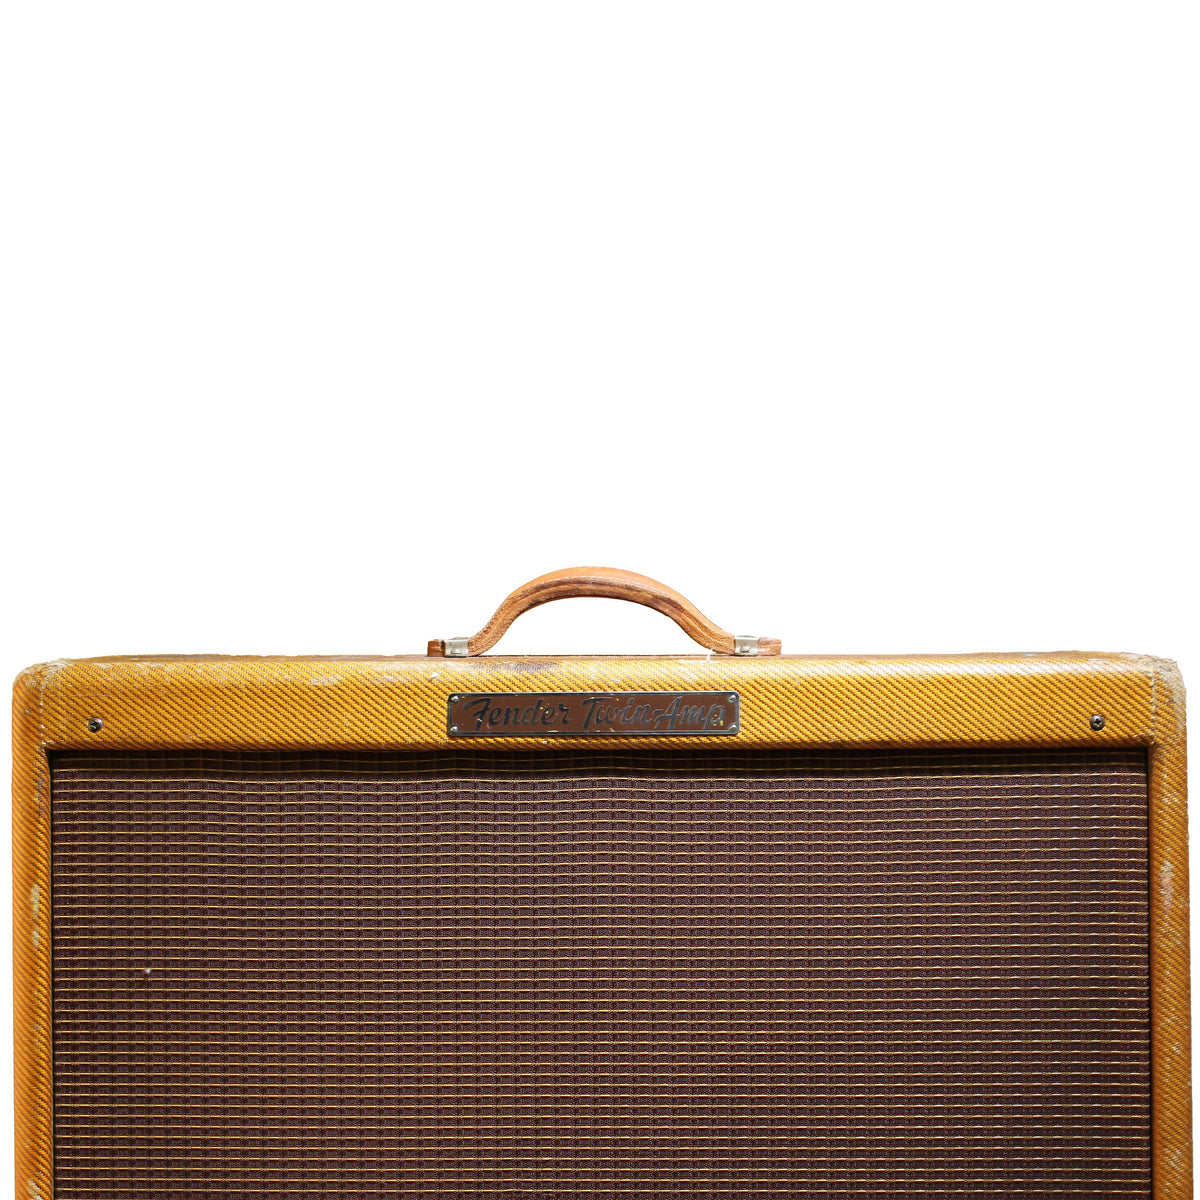 1956 Fender Twin Amplifier - Garrett Park Guitars  - 3